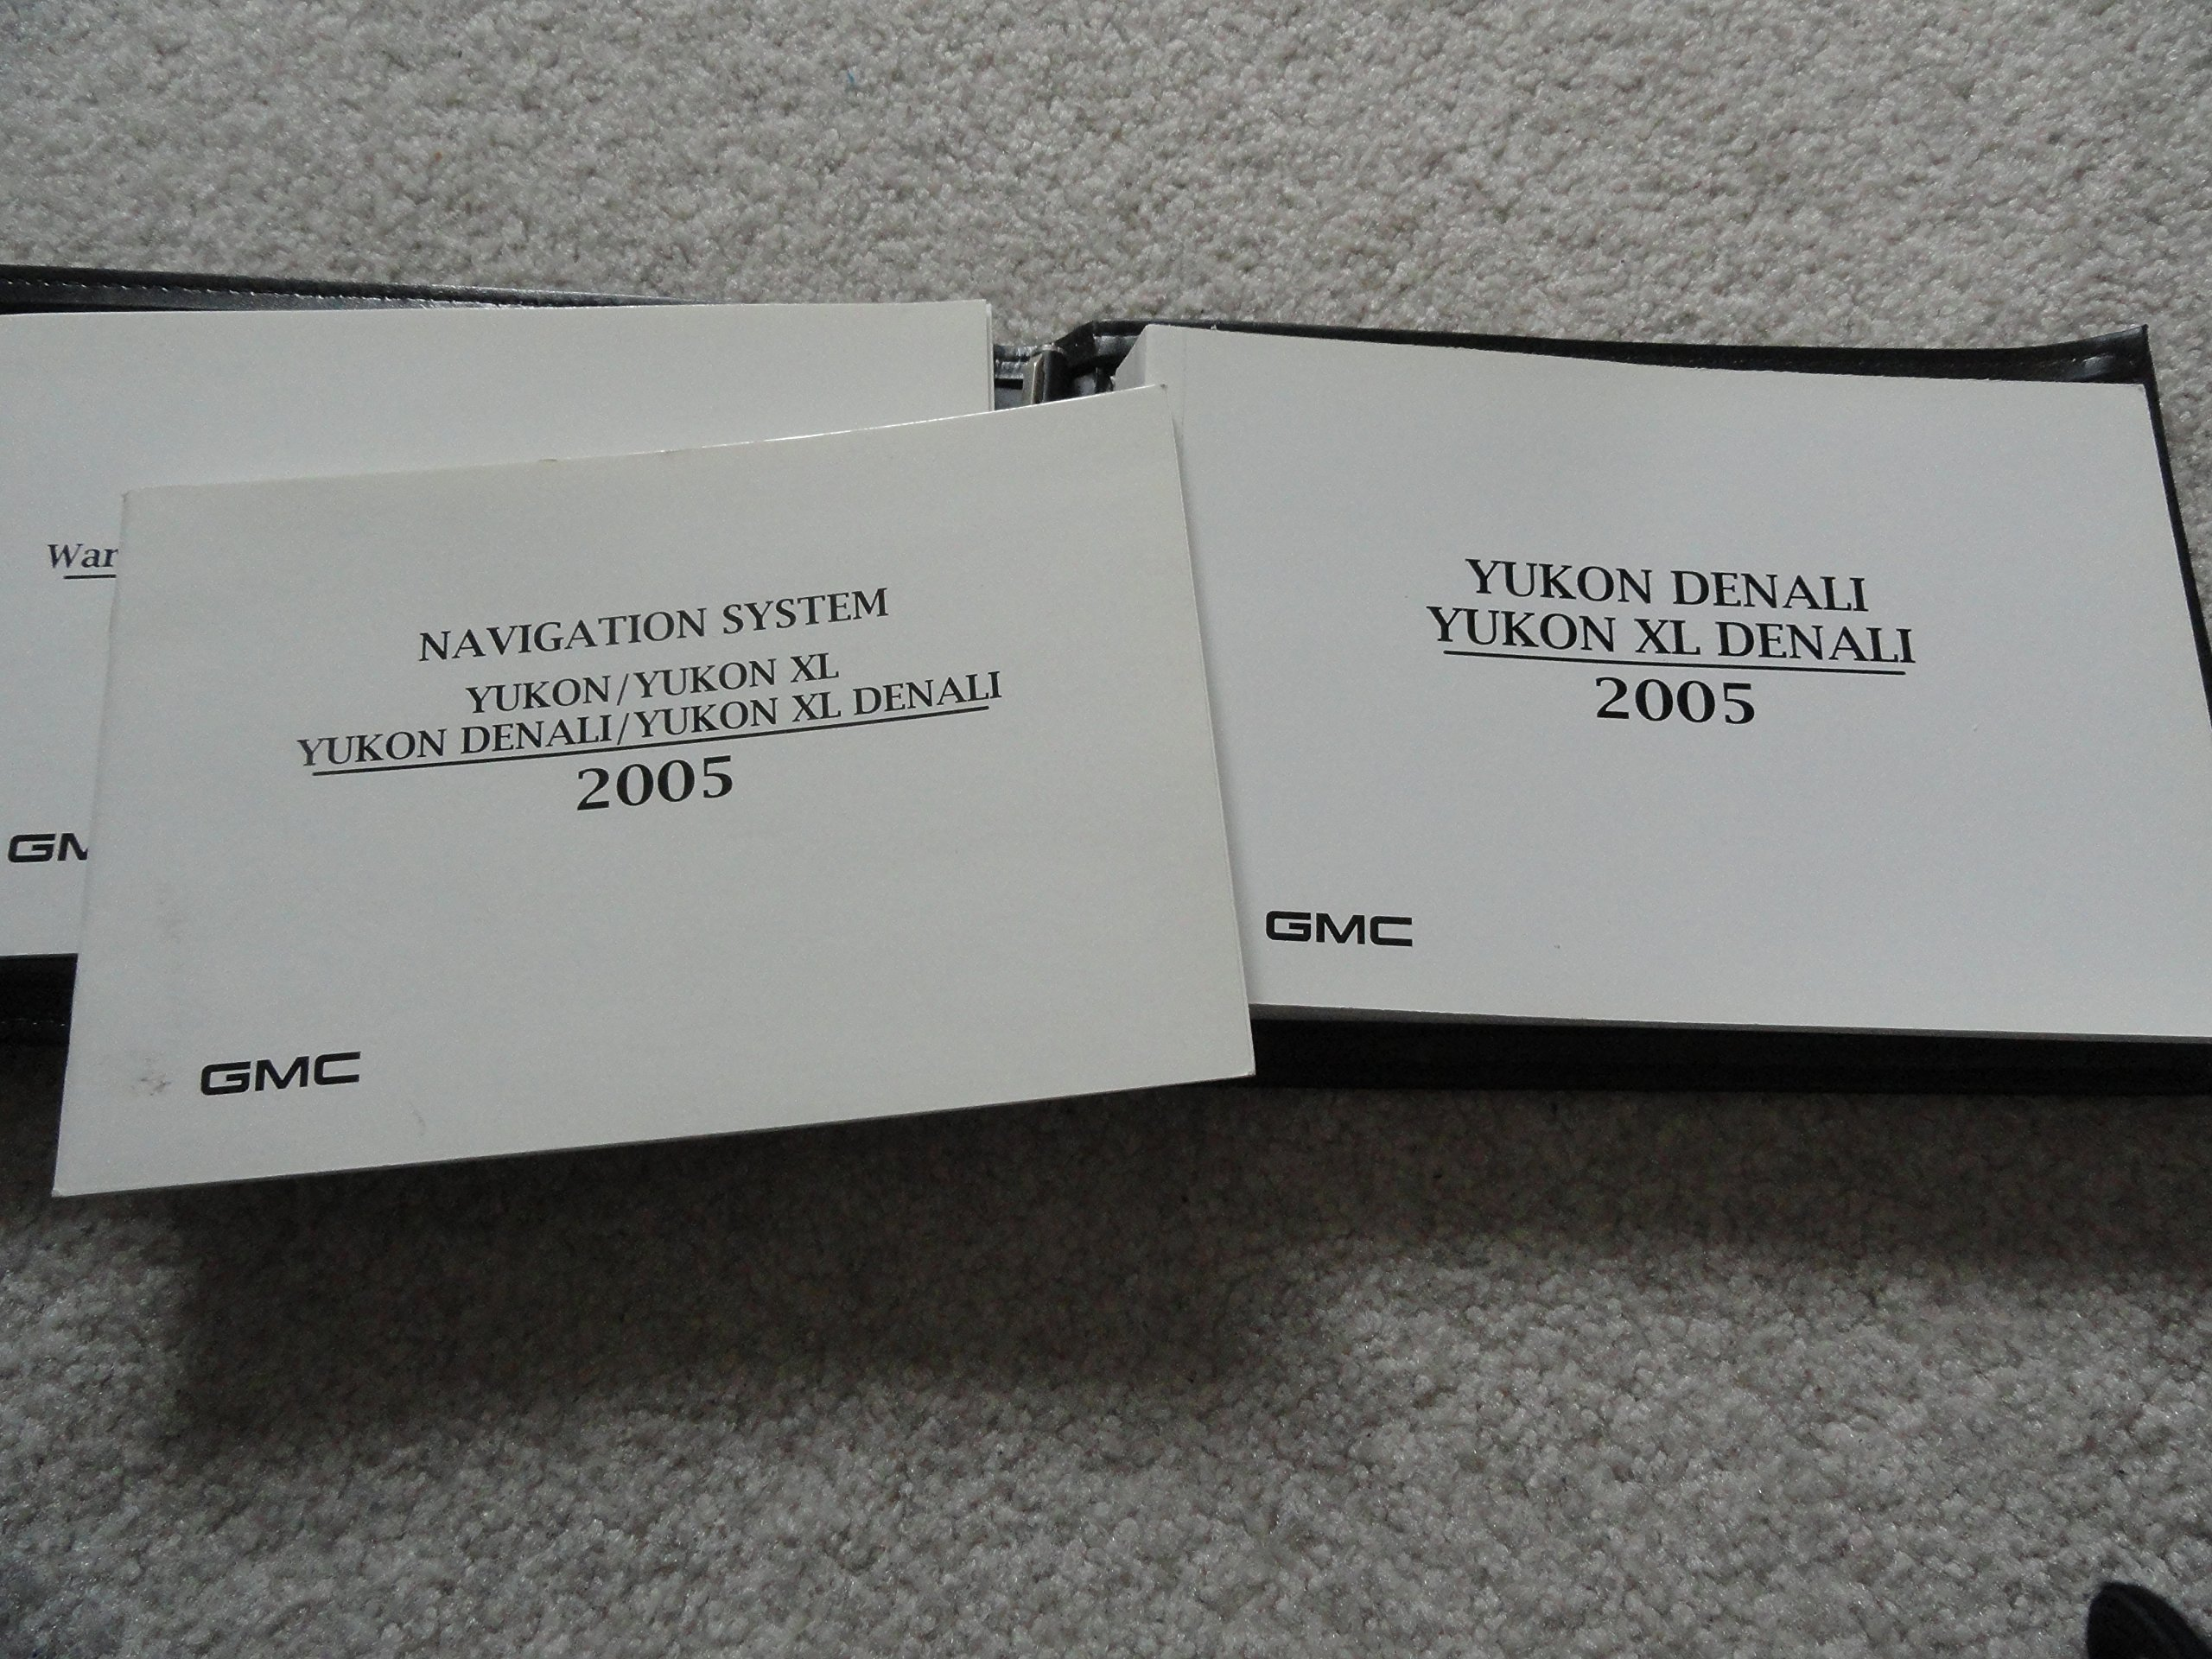 2005 gmc yukon owners manual gmc amazon com books rh amazon com 2005 gmc yukon owner's manual 2005 GMC Yukon XL